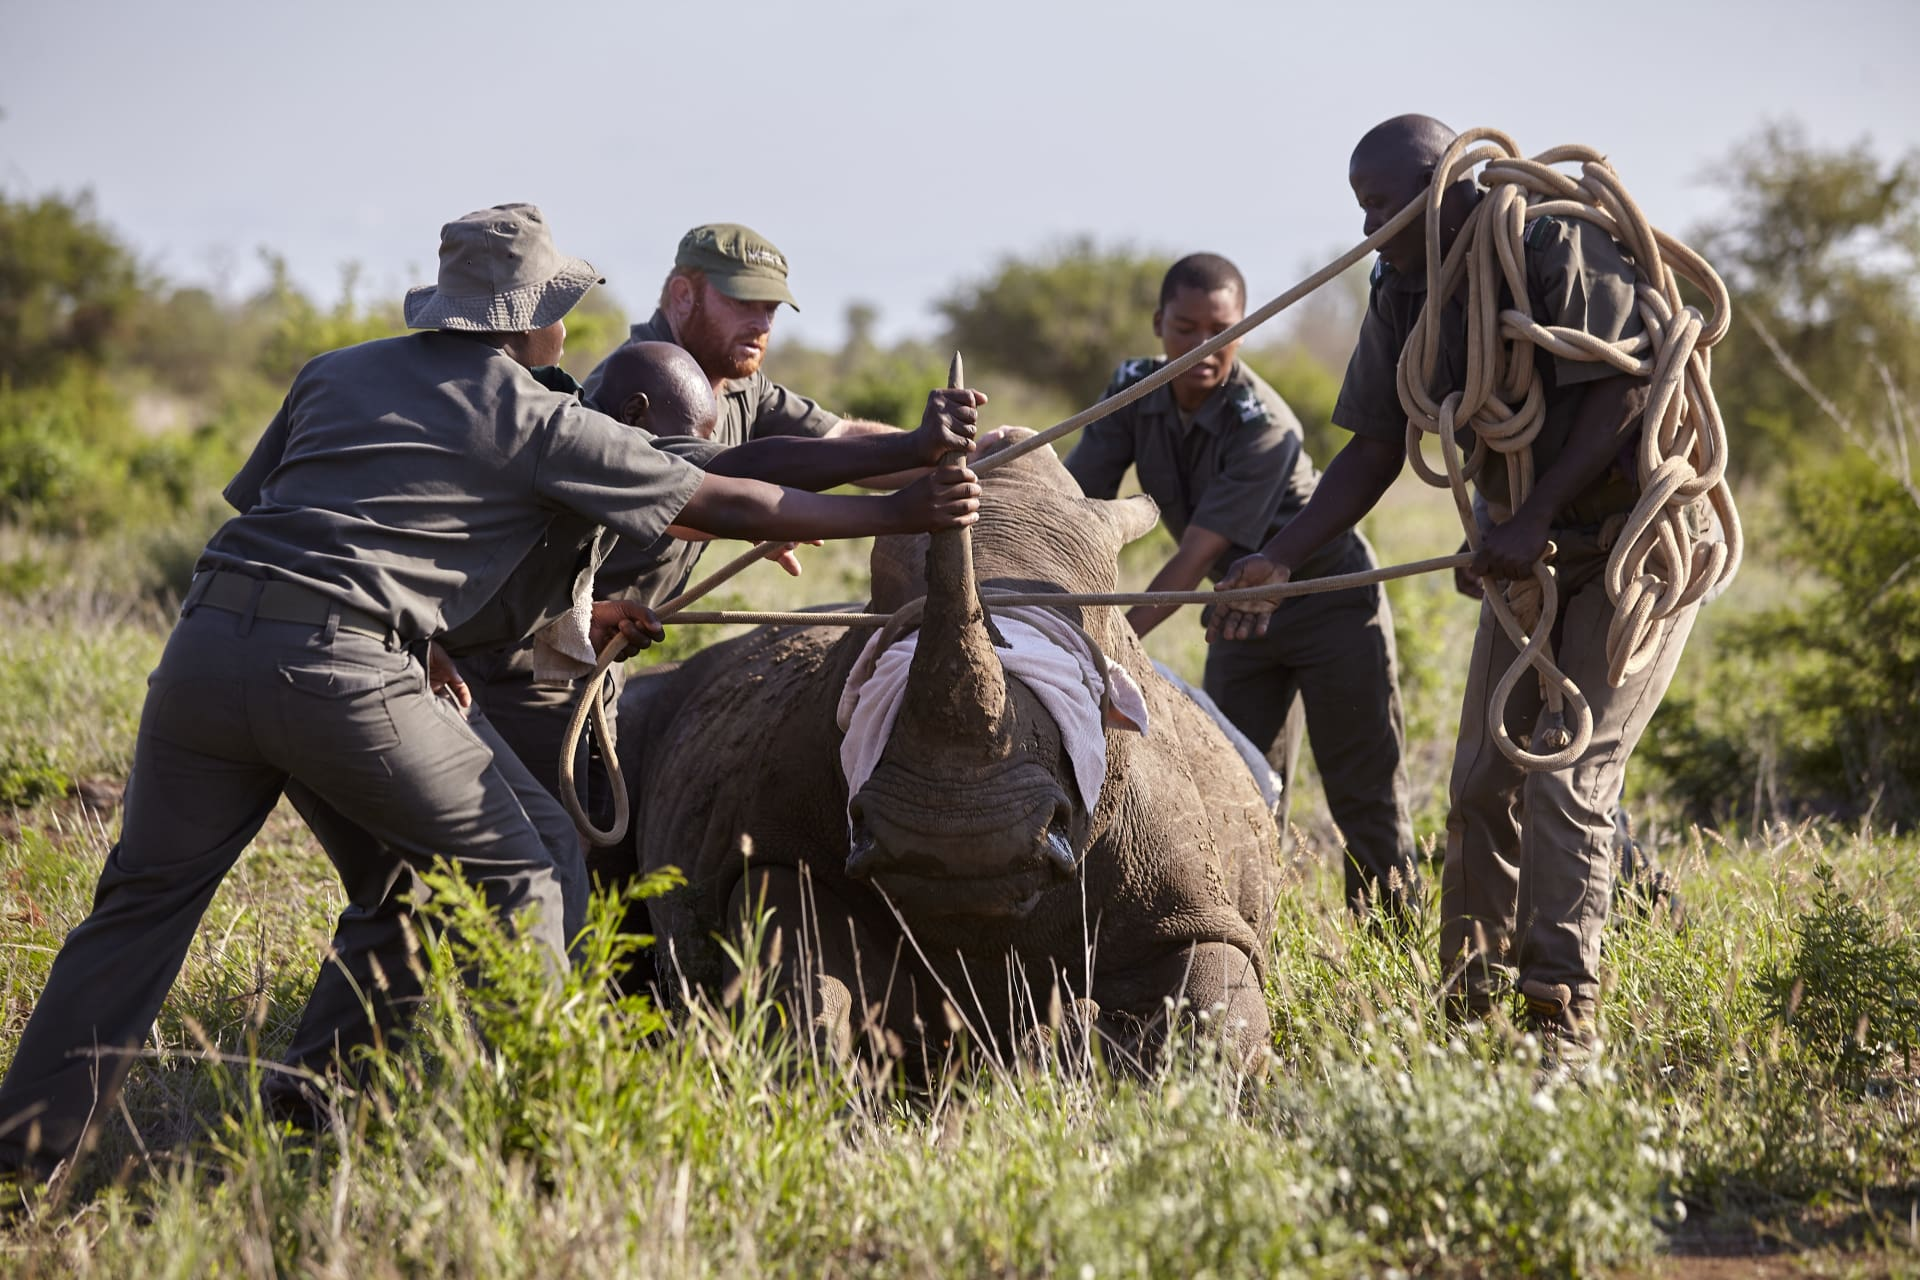 Many hands are involved in ensuring the health and well being of both the humans and the animals of the Kruger Park.